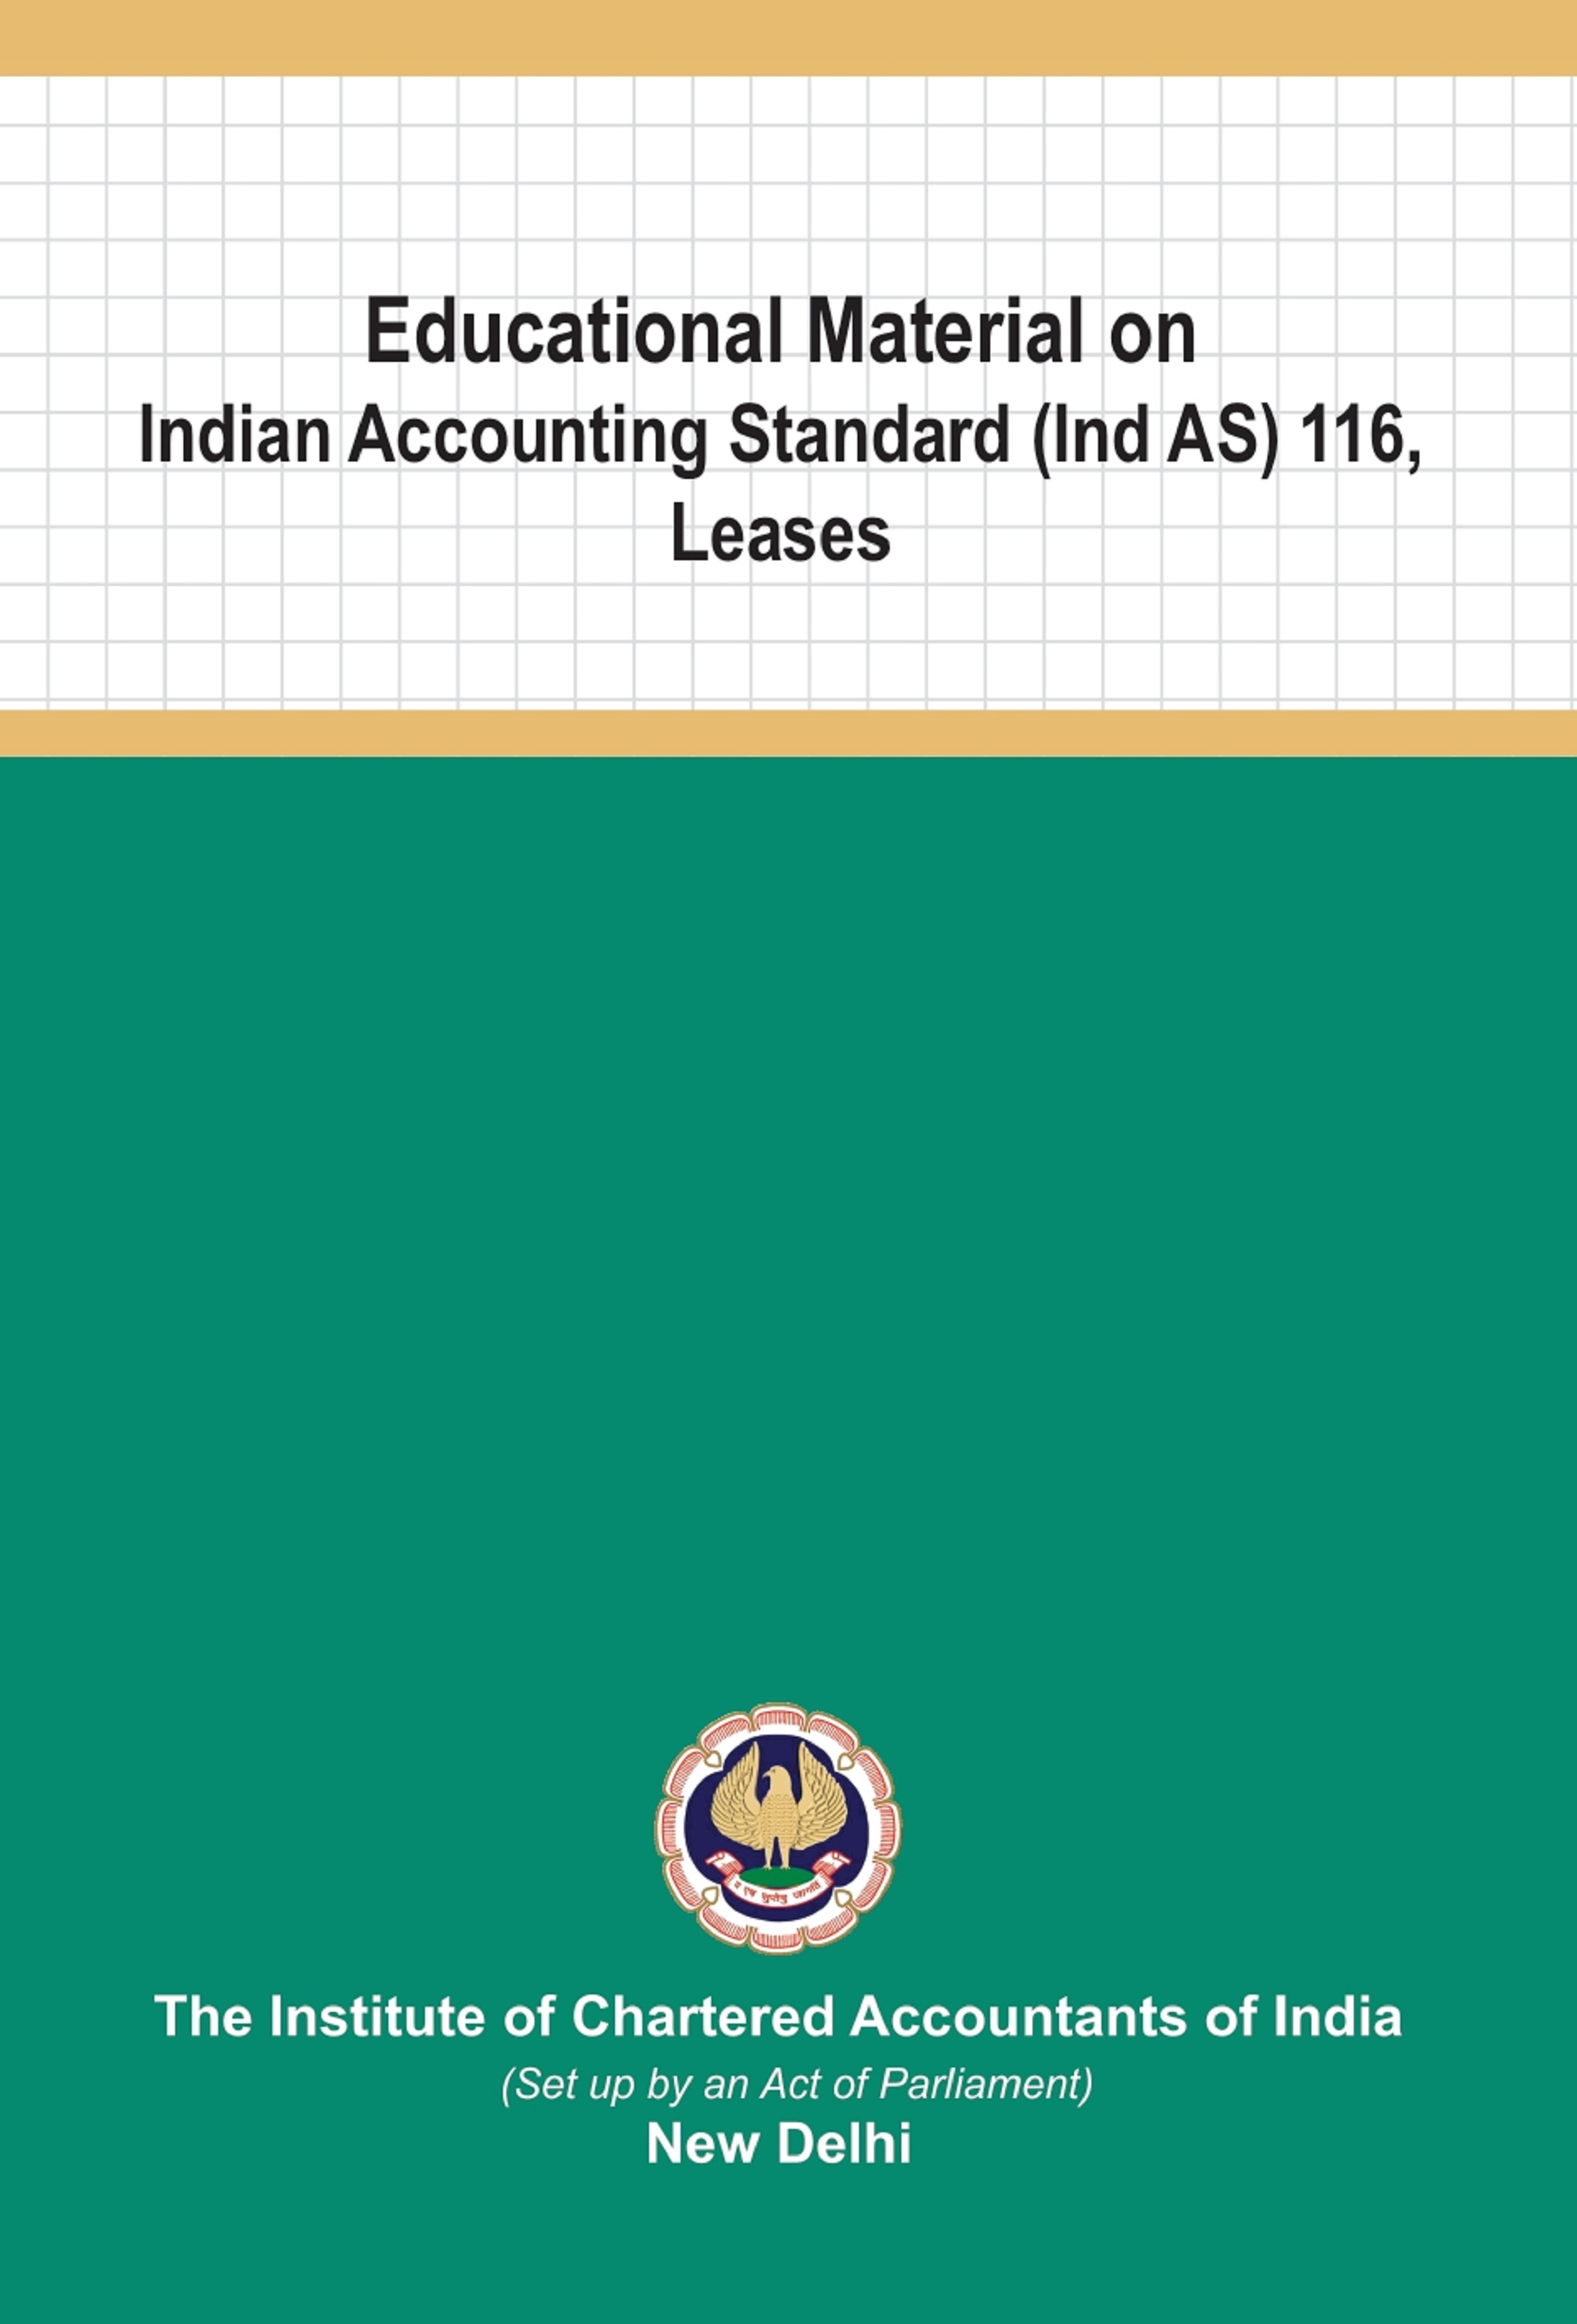 Educational Material on Indian Accounting Standards (Ind AS) 116, Leases (January, 2020)